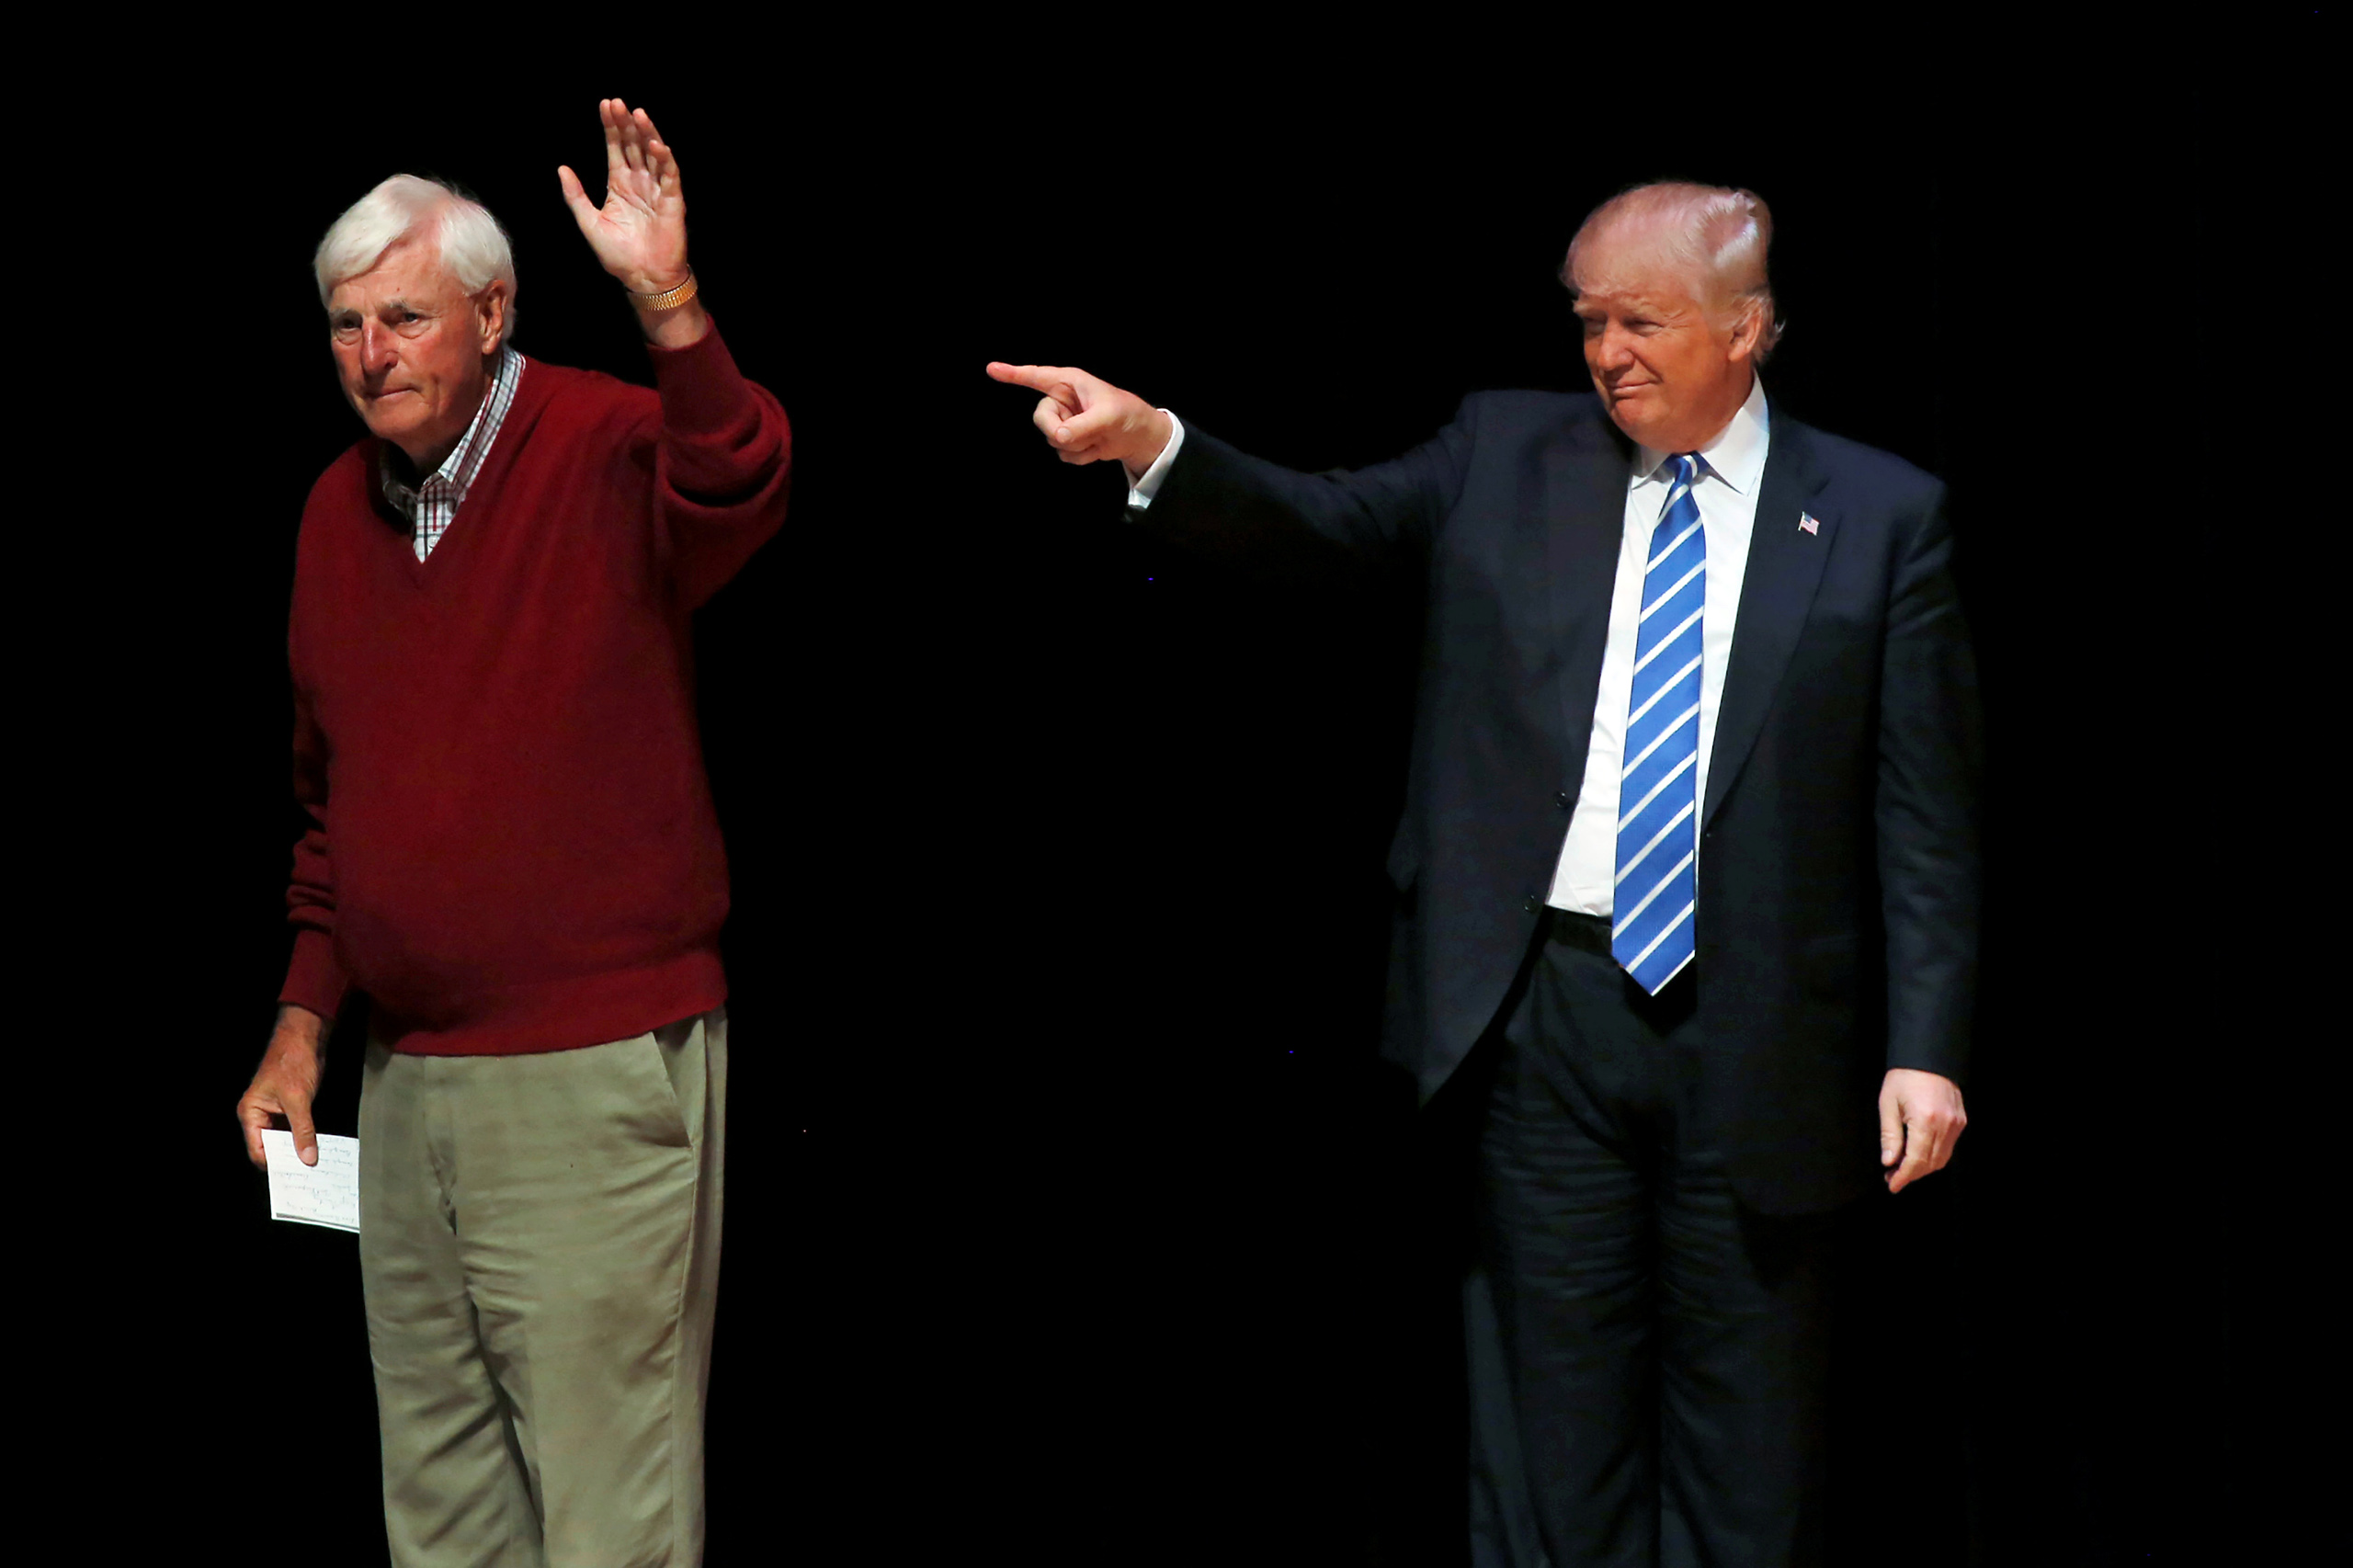 Republican presidential candidate Donald Trump is joined on stage by former Indiana University basketball coach Bob Knight at a campaign event at the Old National Events Plaza in Evansville, Ind. on April 28, 2016.